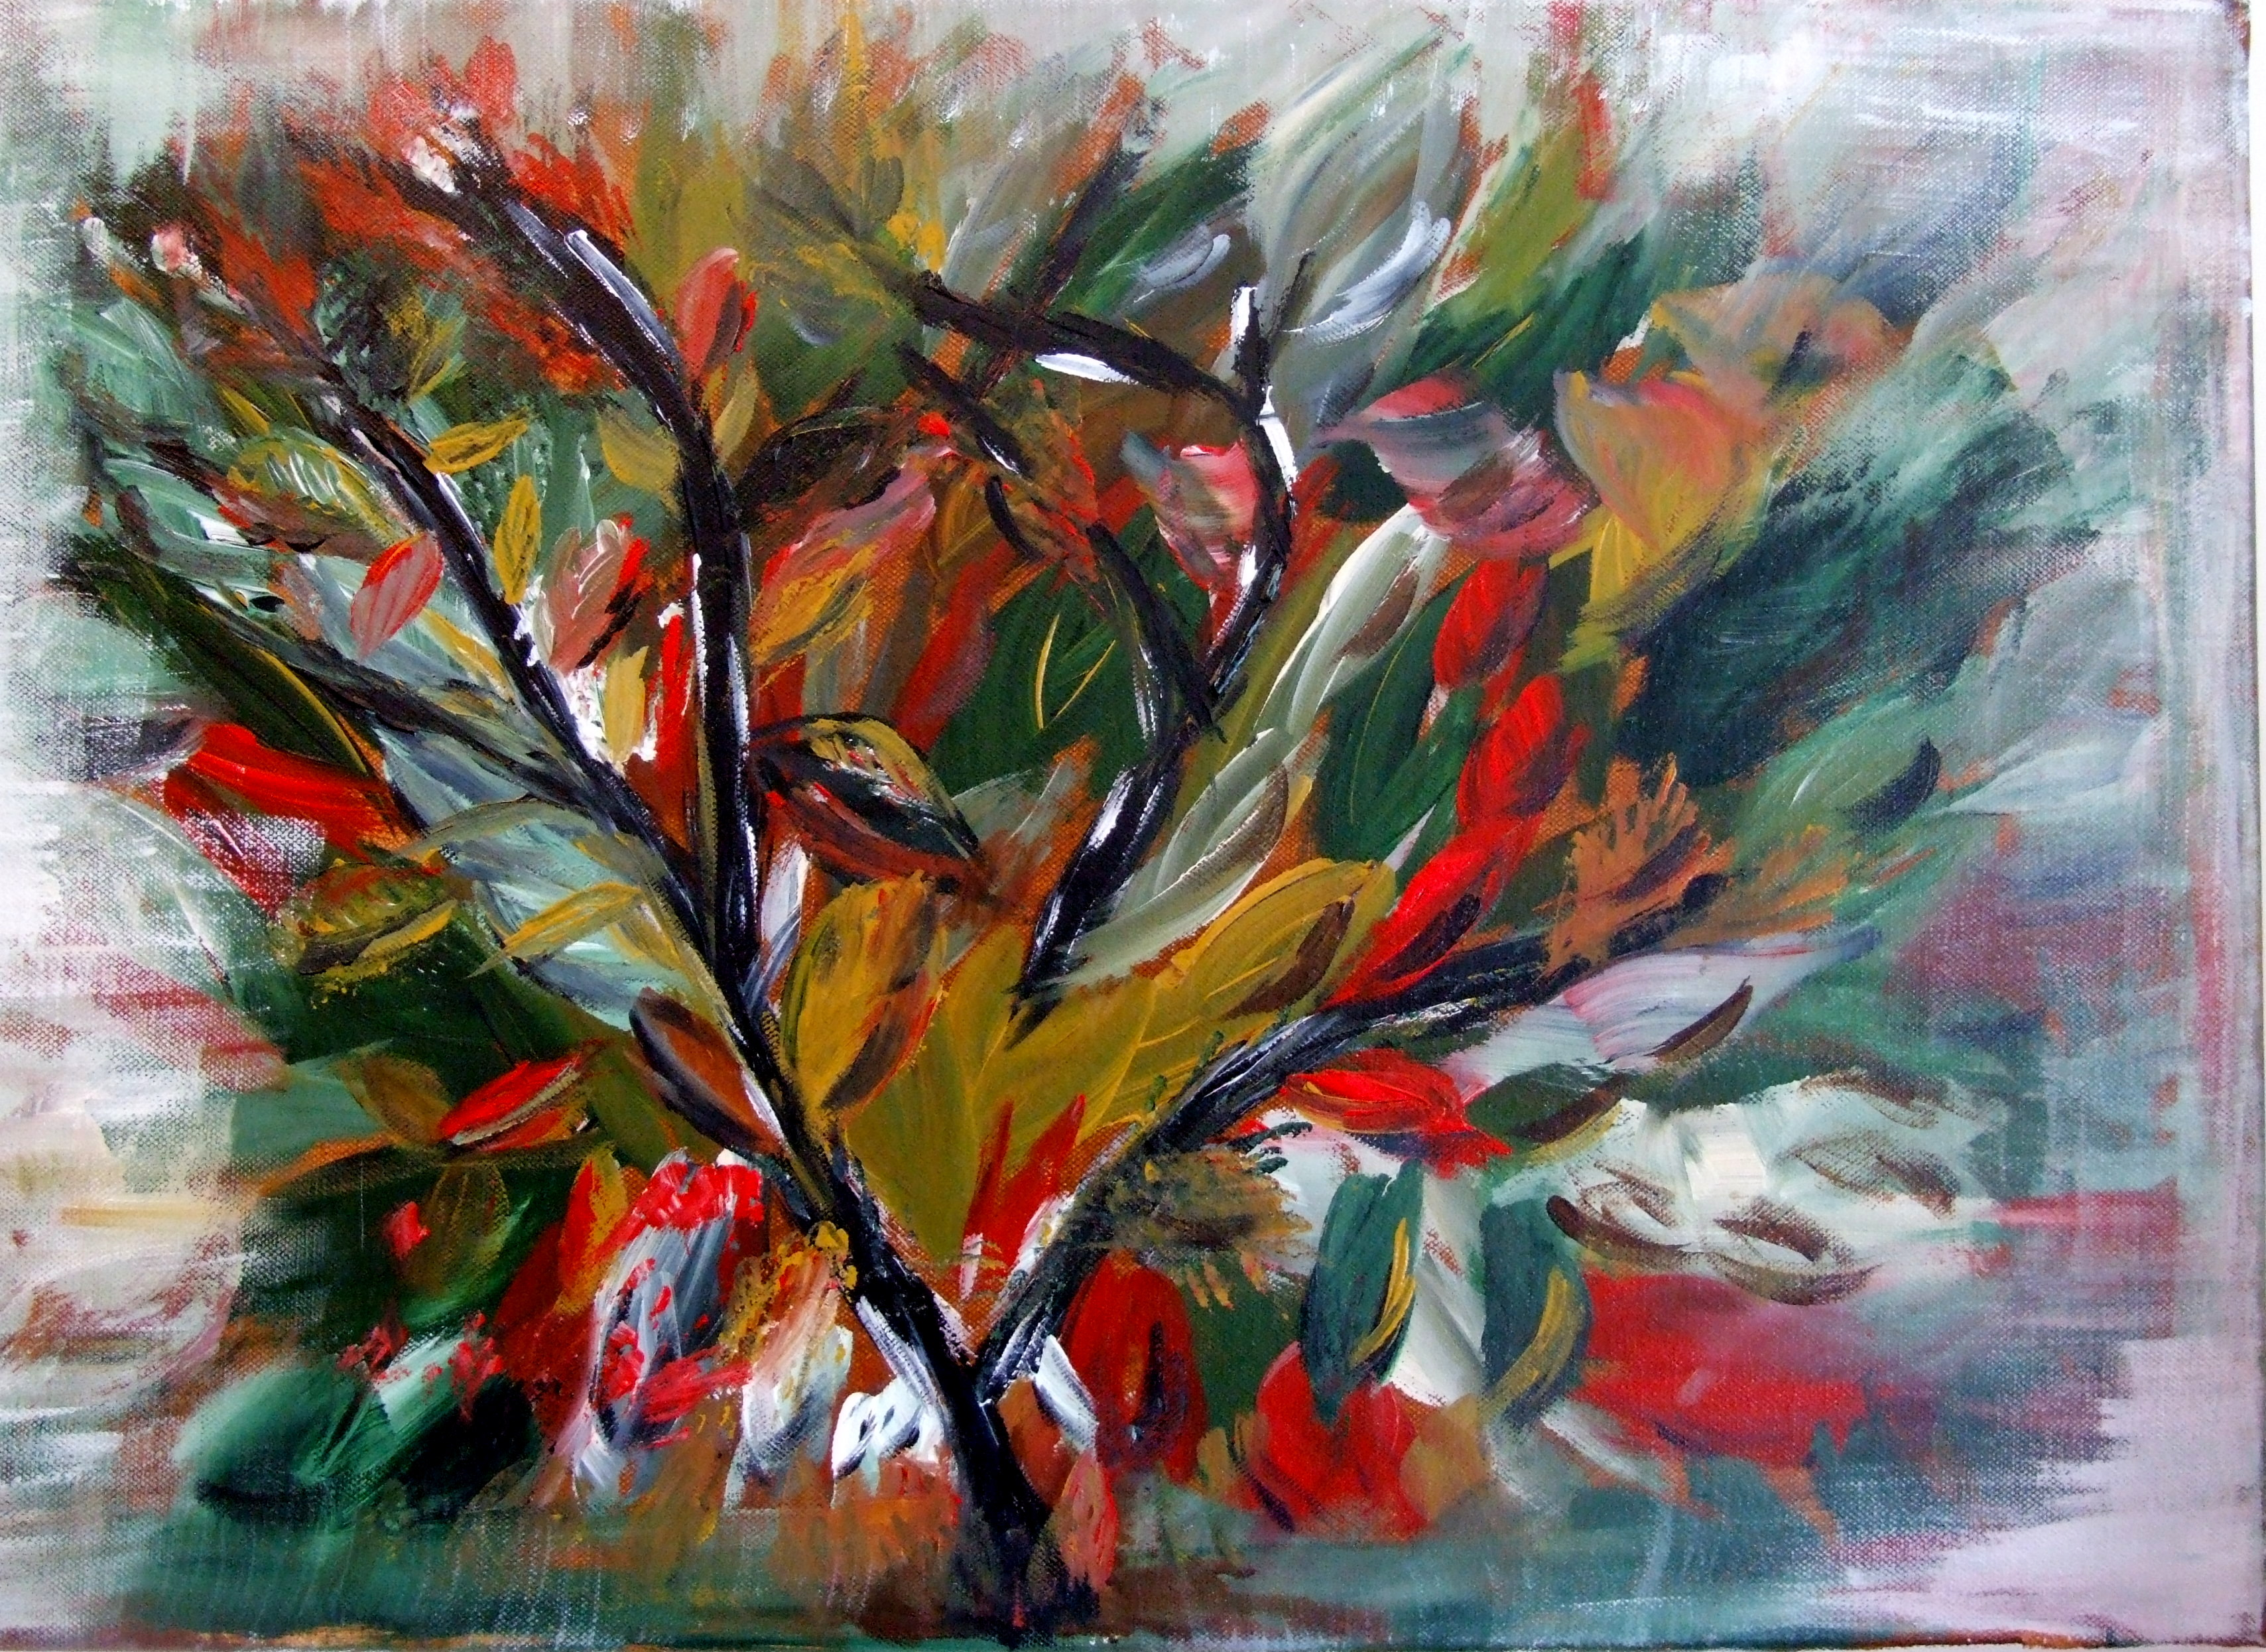 Thirty minute painting attempting to depict Autumn